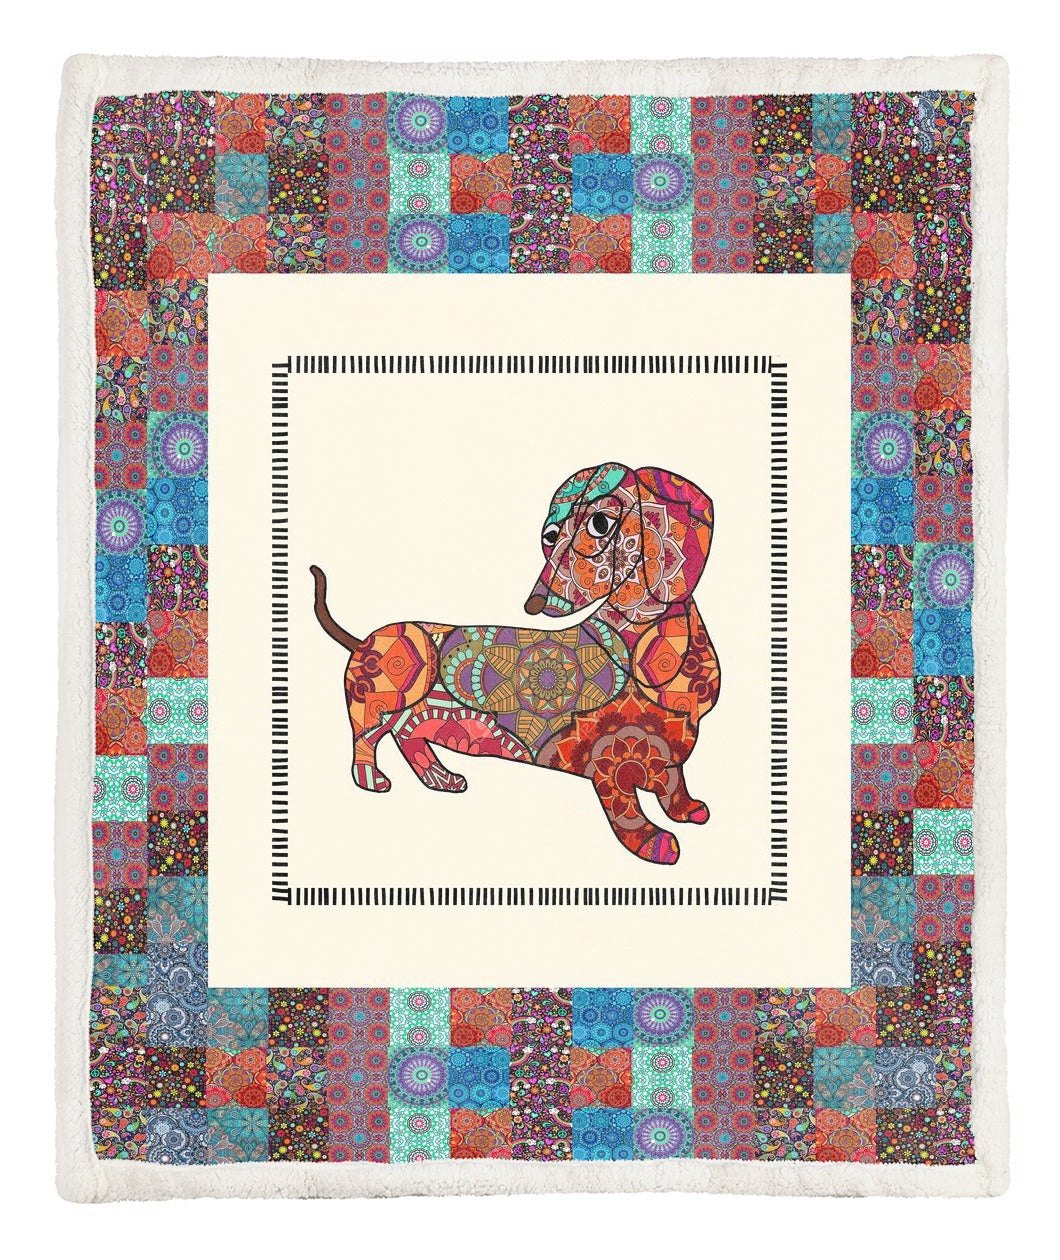 dachshund-throw-blanket-tabtvh1610792